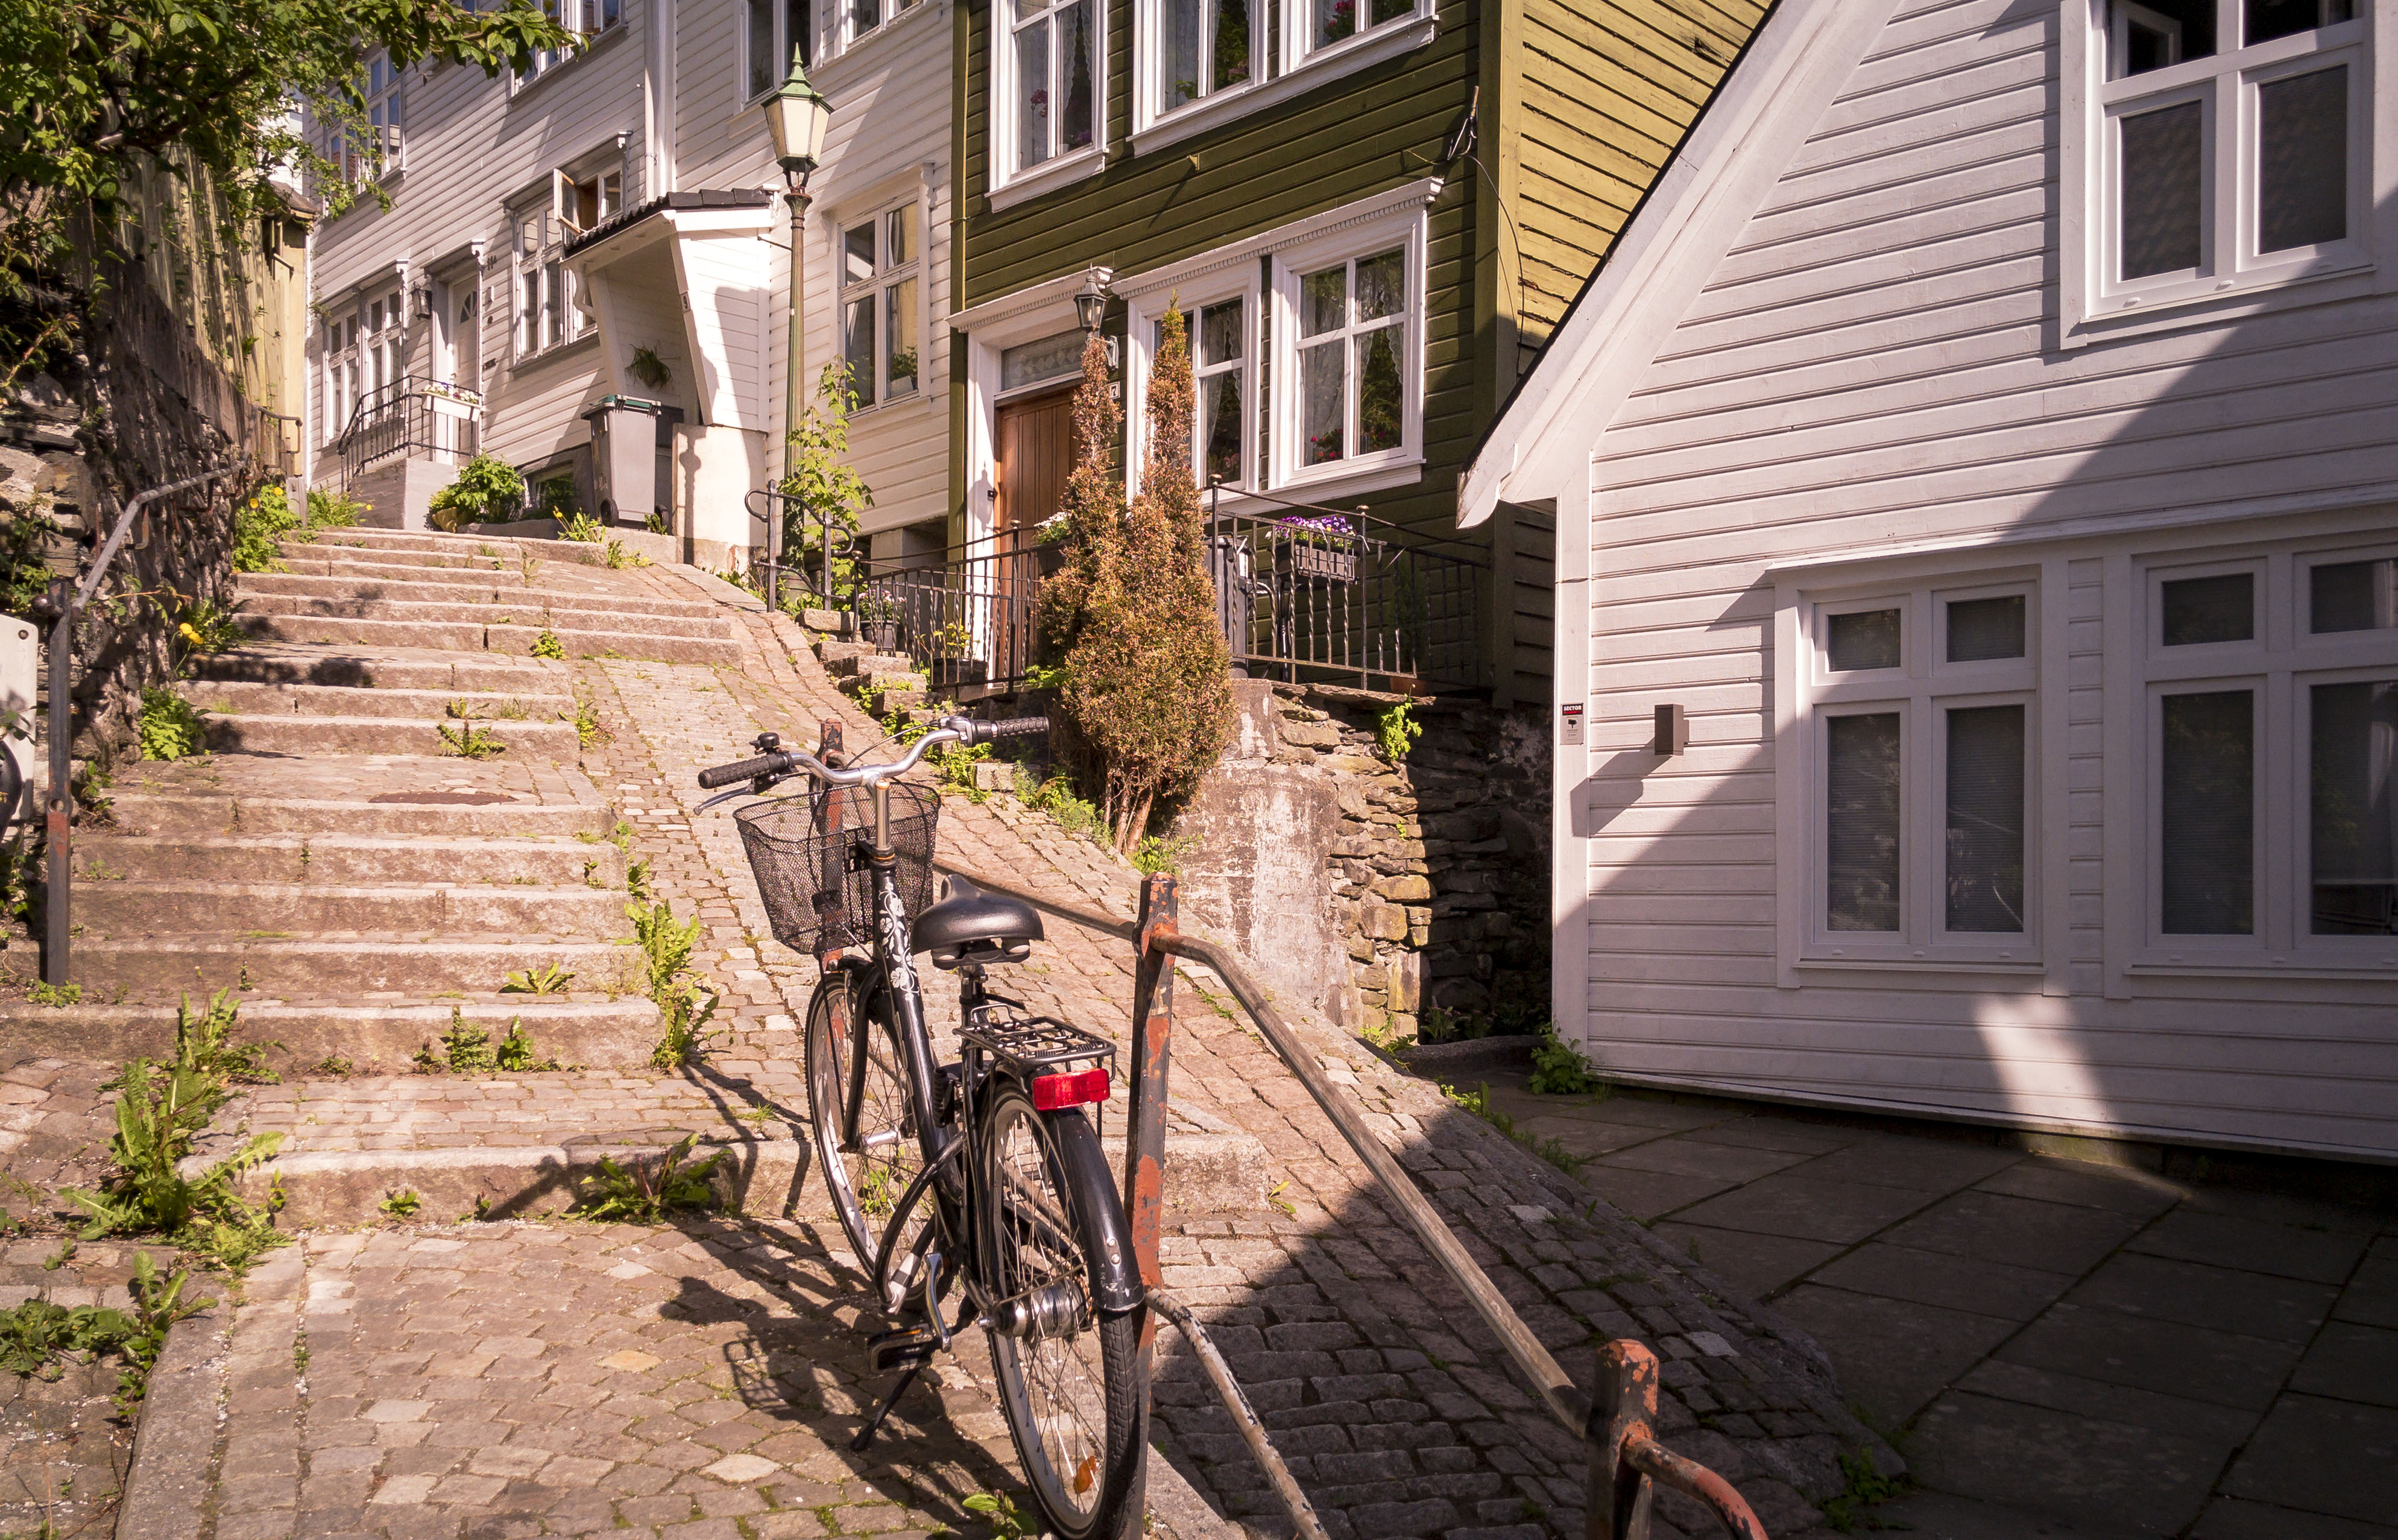 bergen is a must see place in Norway to visit